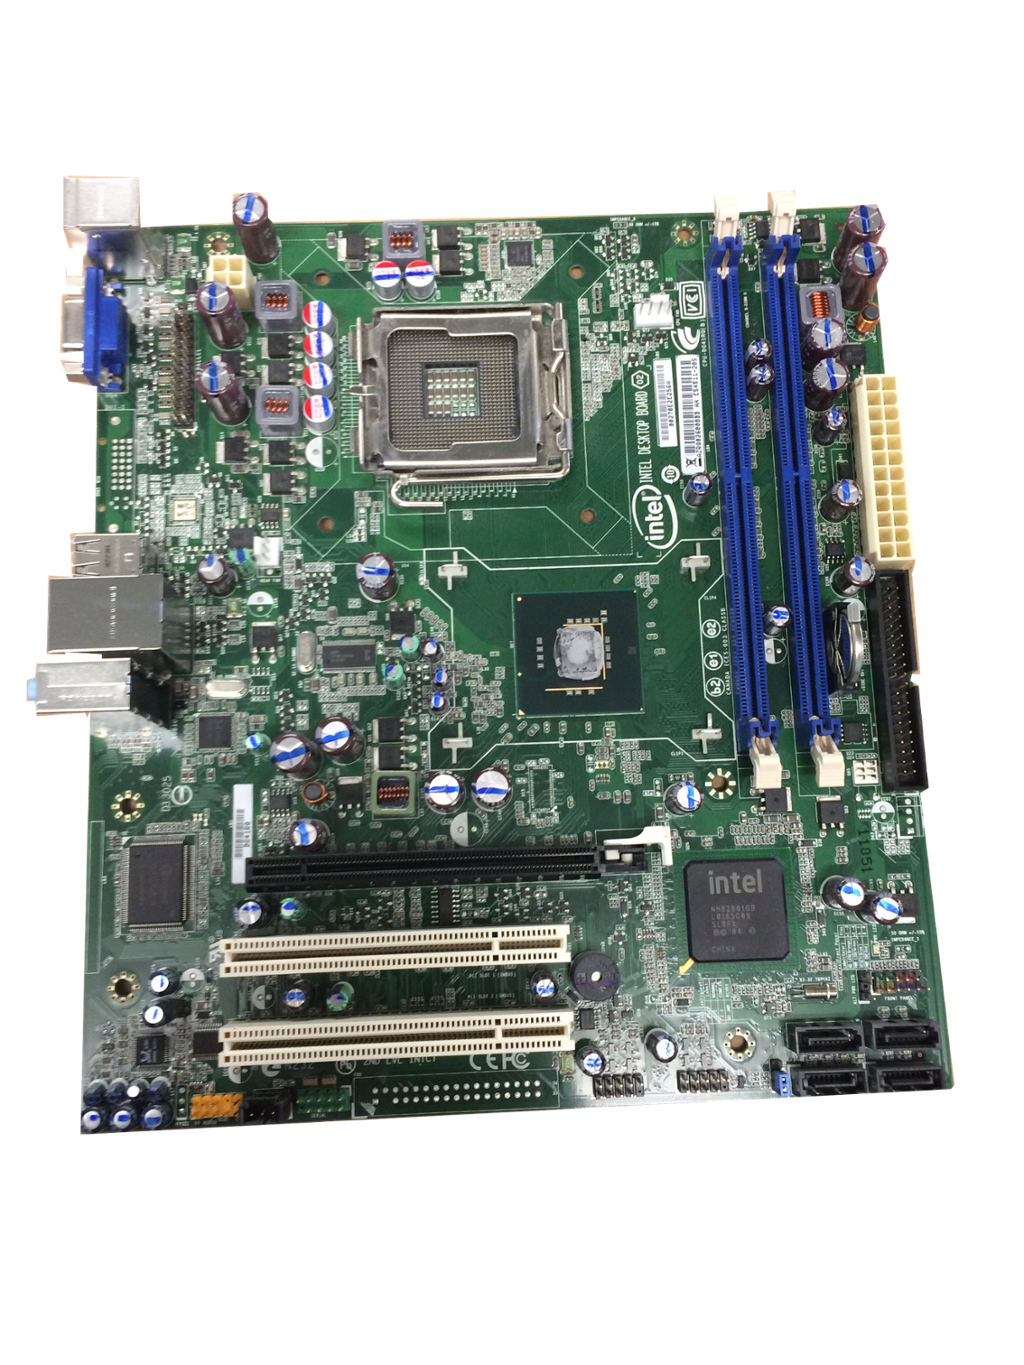 Motherboard Components